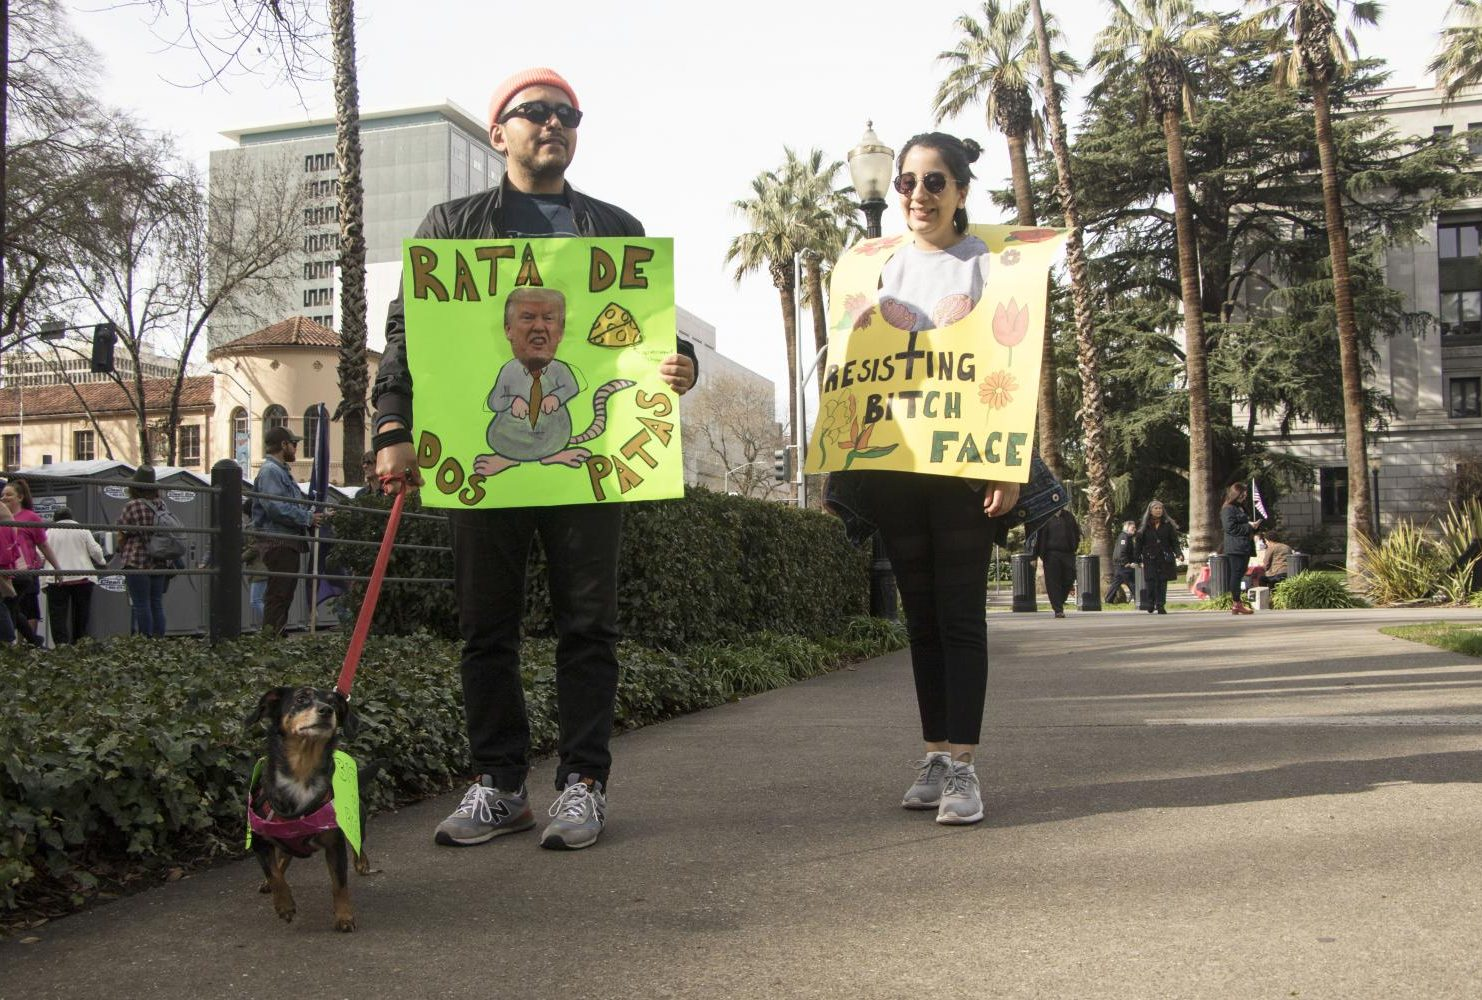 "A demonstrator holds a sign that reads ""Rata De Dos Patas"" which translates to two legged rat as another participant wears her sign that reads ""Resisting Bitch Face"" at the California State Capitol during the third annual Women's March."